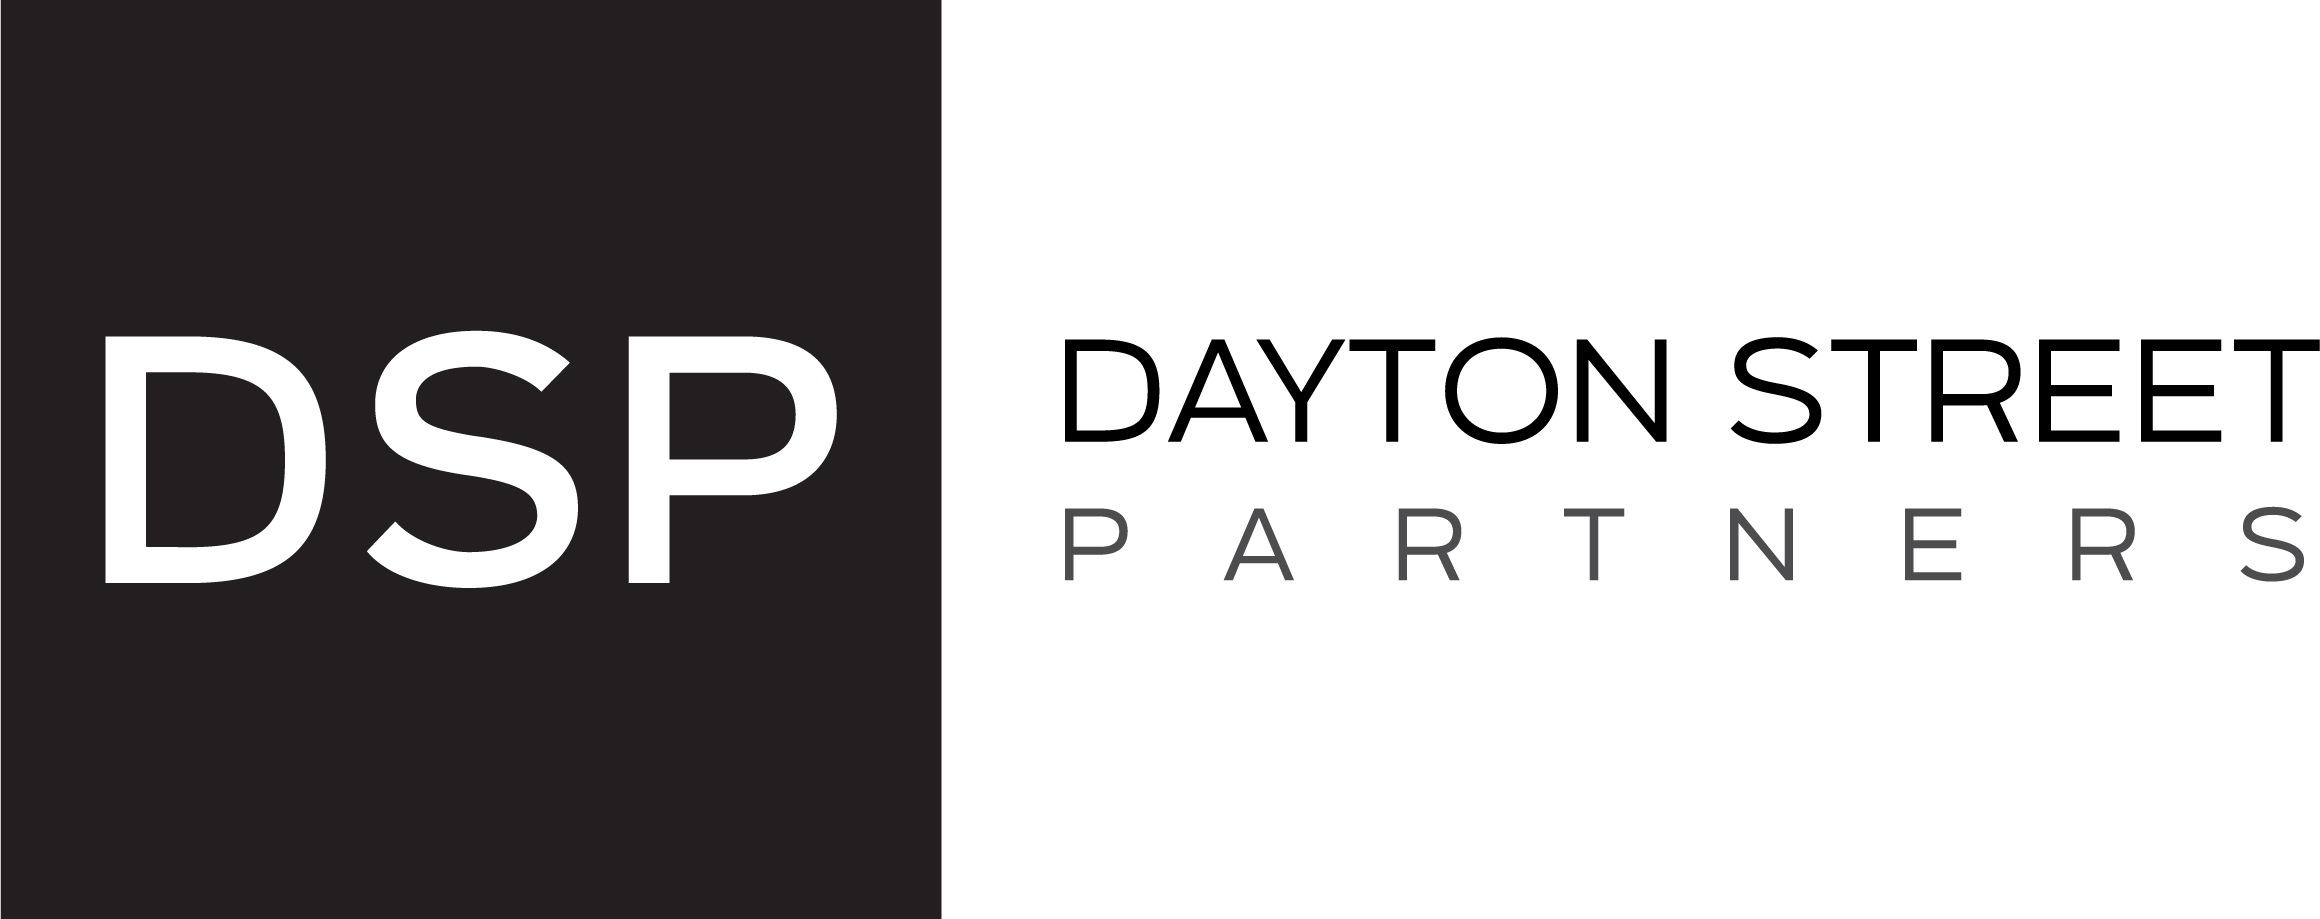 Dayton Street Partners_Horizontal_High